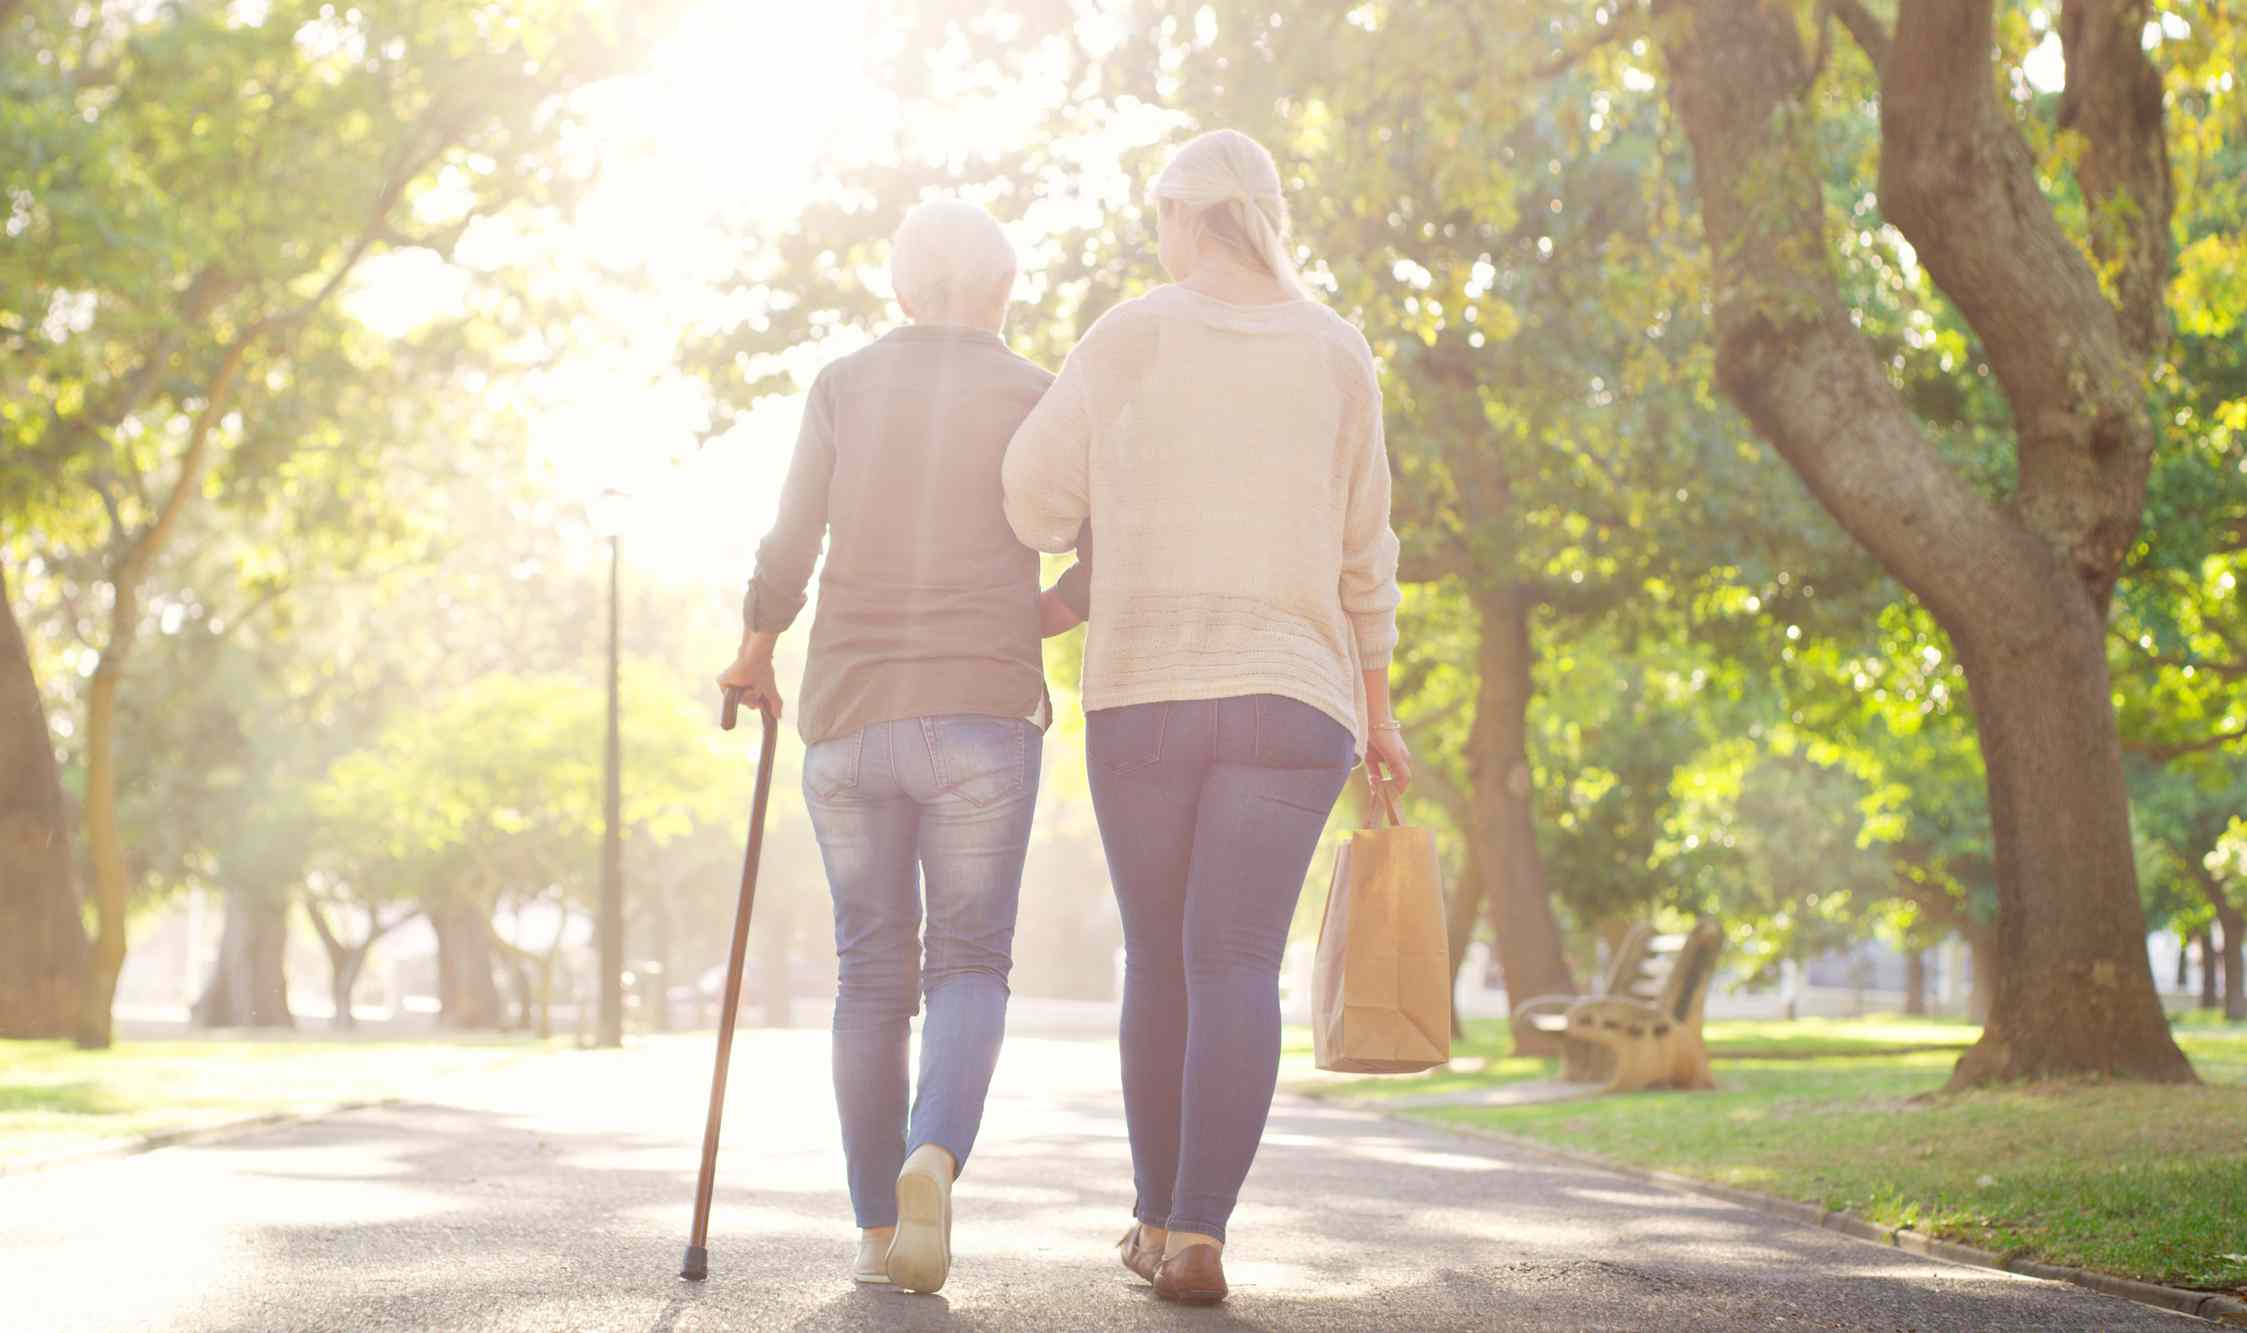 Mother and daughter walking in the park. Older woman is using a cane.